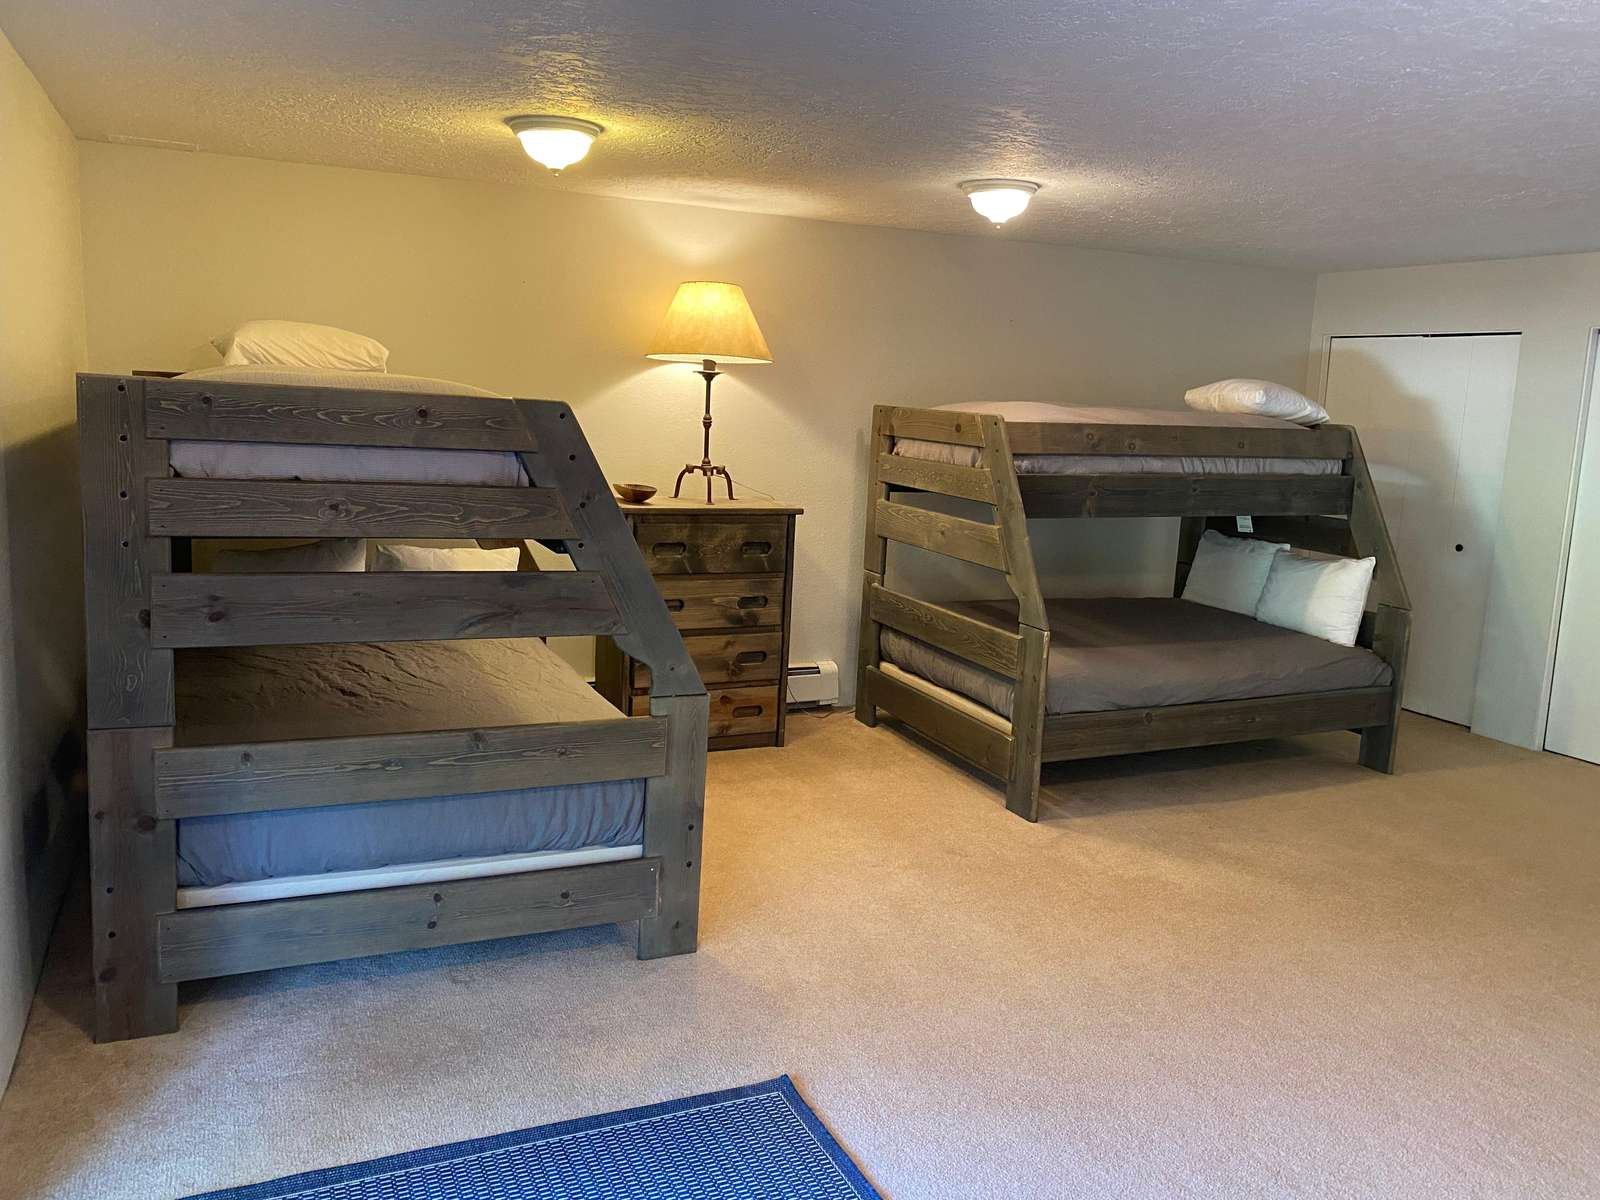 Lower beds are full size mattress